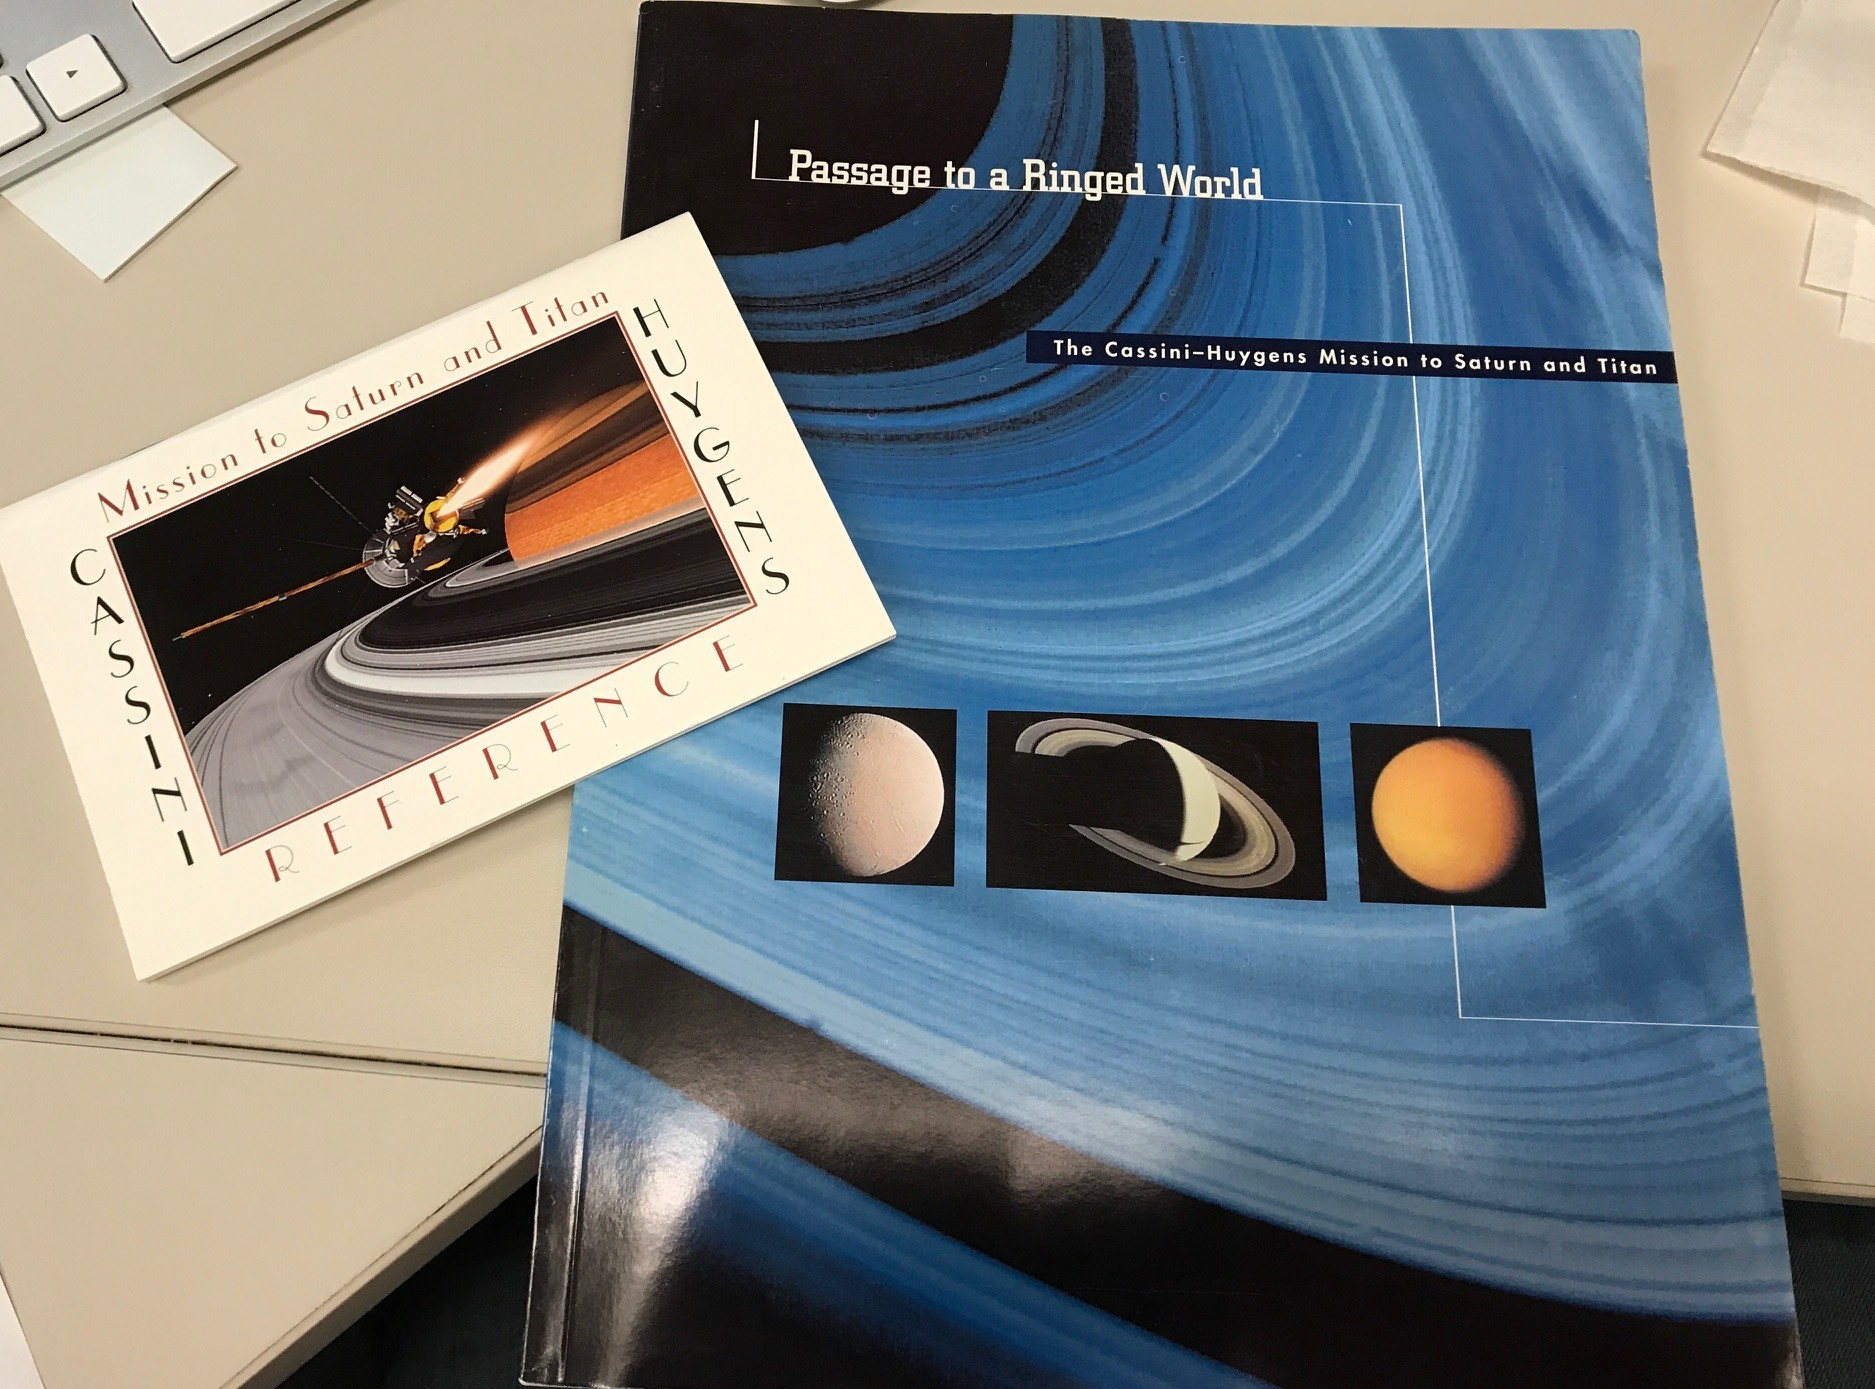 Background books about the Cassini-Huygens mission and what was known about Saturn at the time of launch, in 1997.